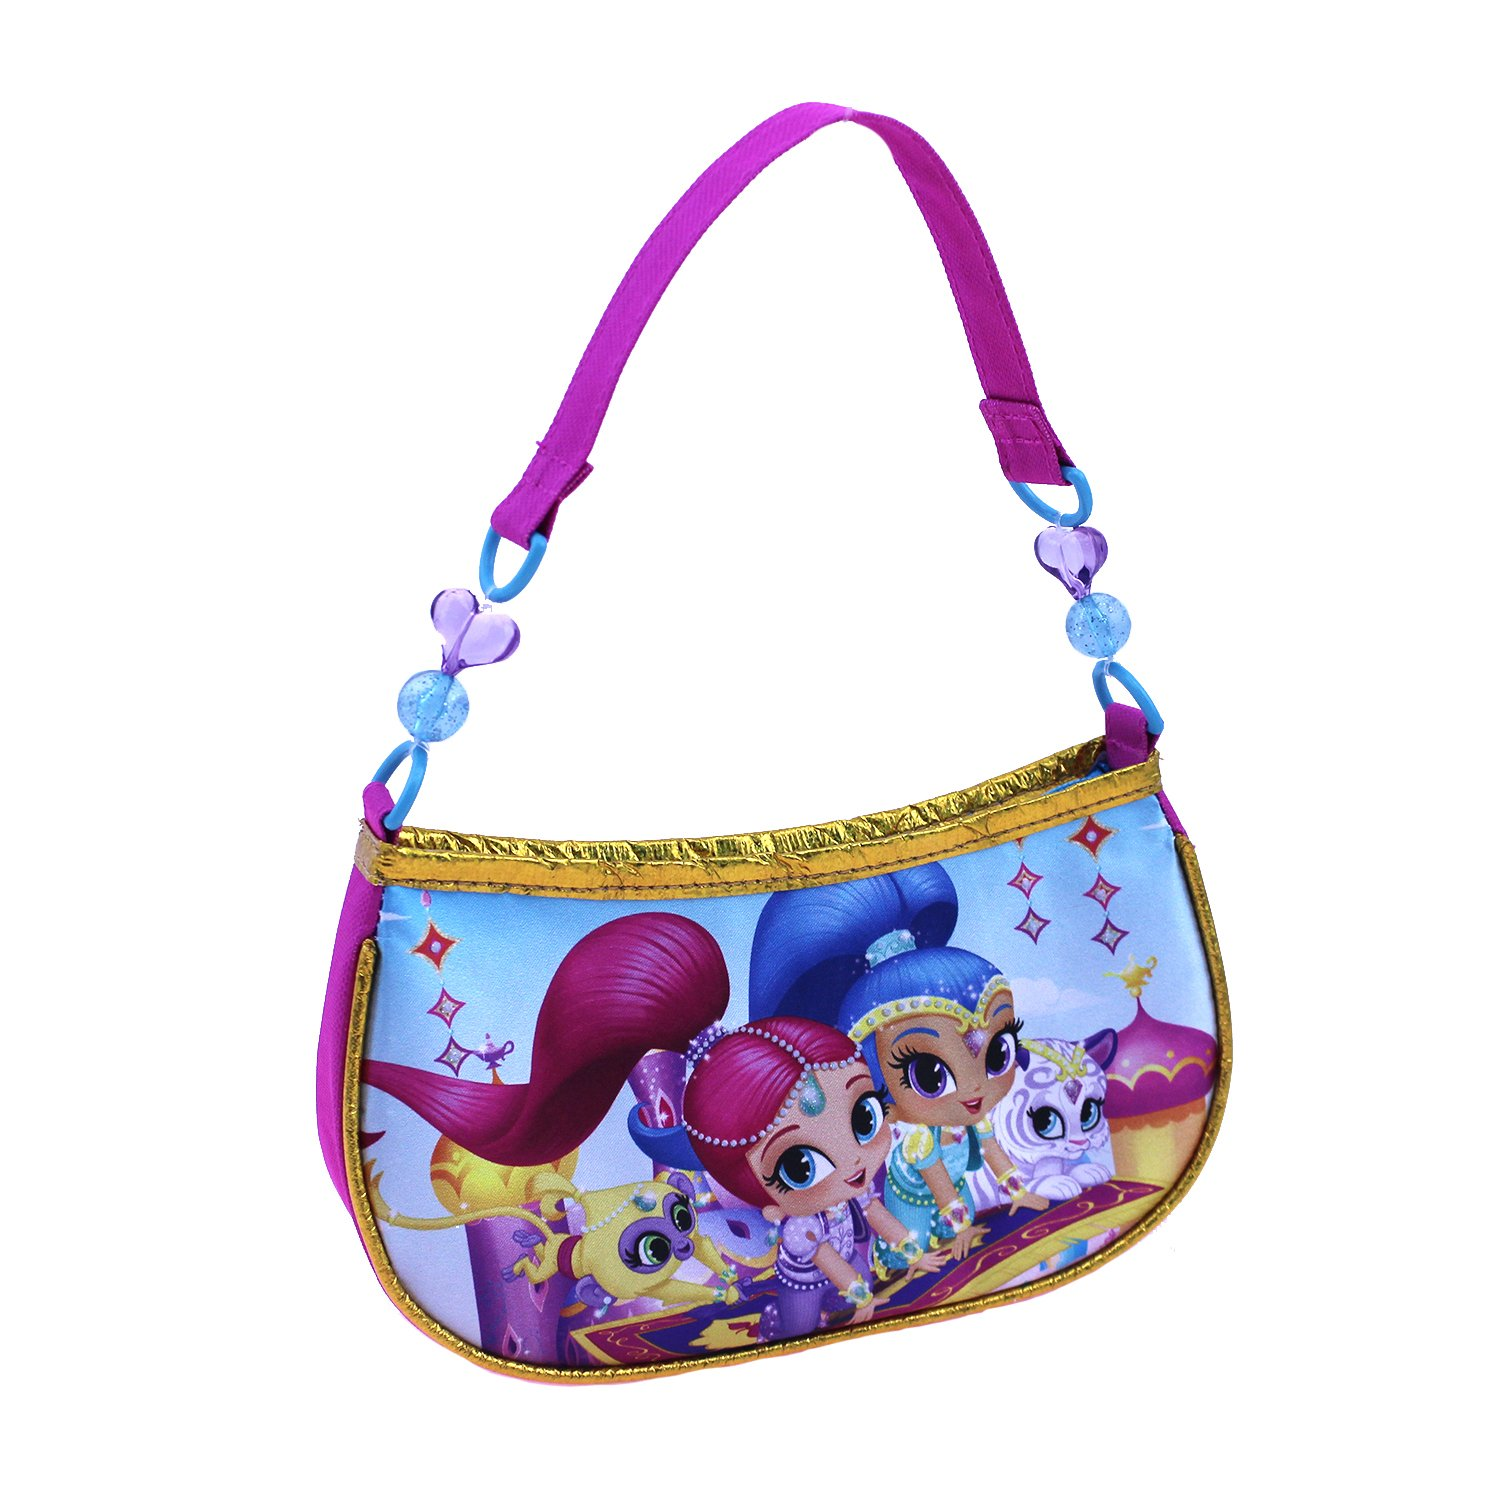 39634e0724674 Online Cheap wholesale Nickelodeon Girls Shimmer and Shine Beaded Handbag  Shoulder Bag, Pink, One Size Suppliers